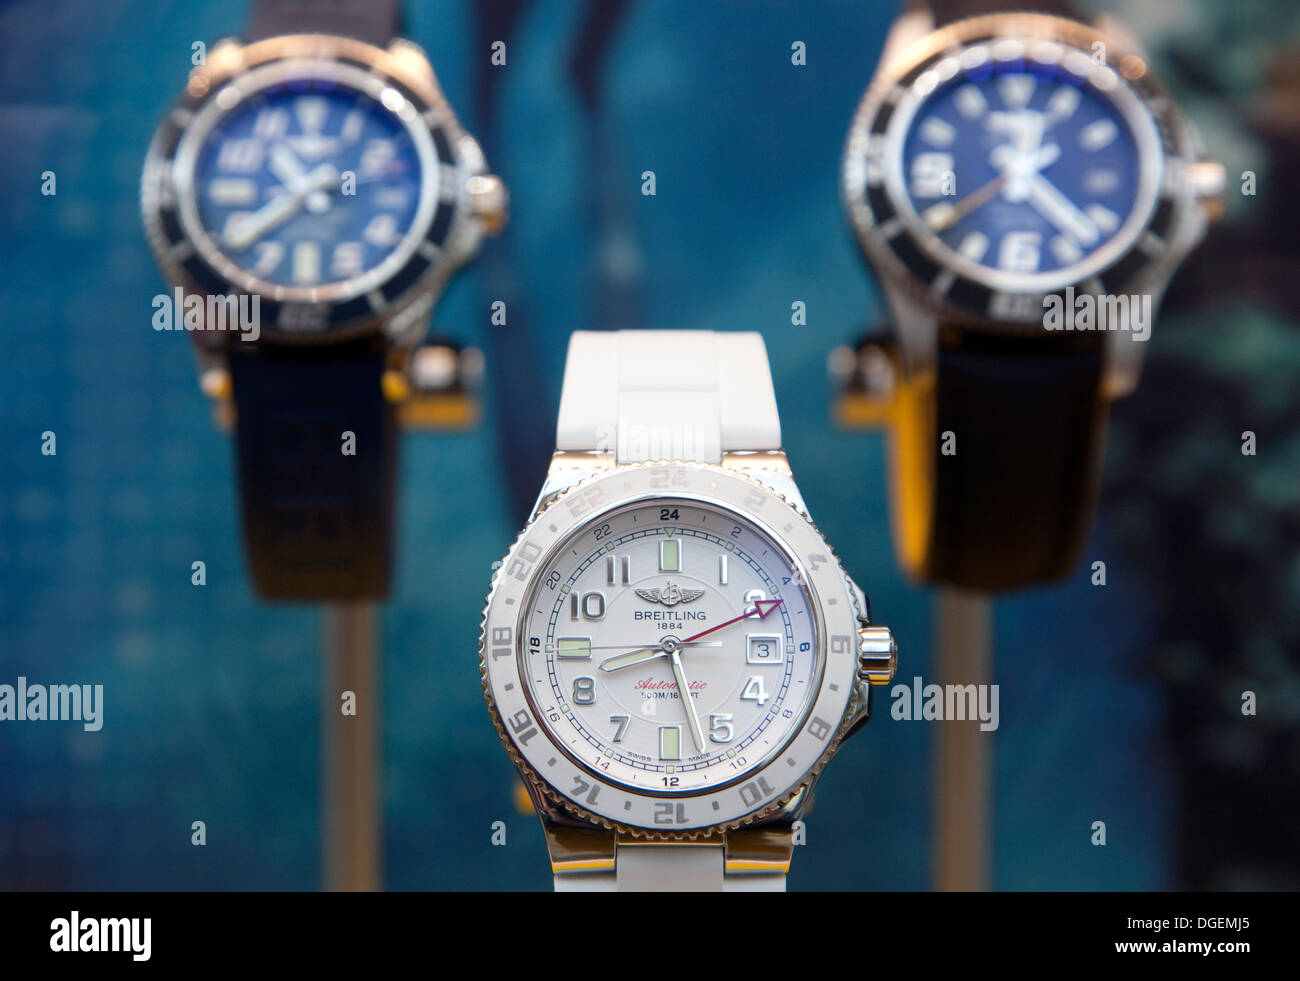 Breitling watches on display in London shop window - Stock Image